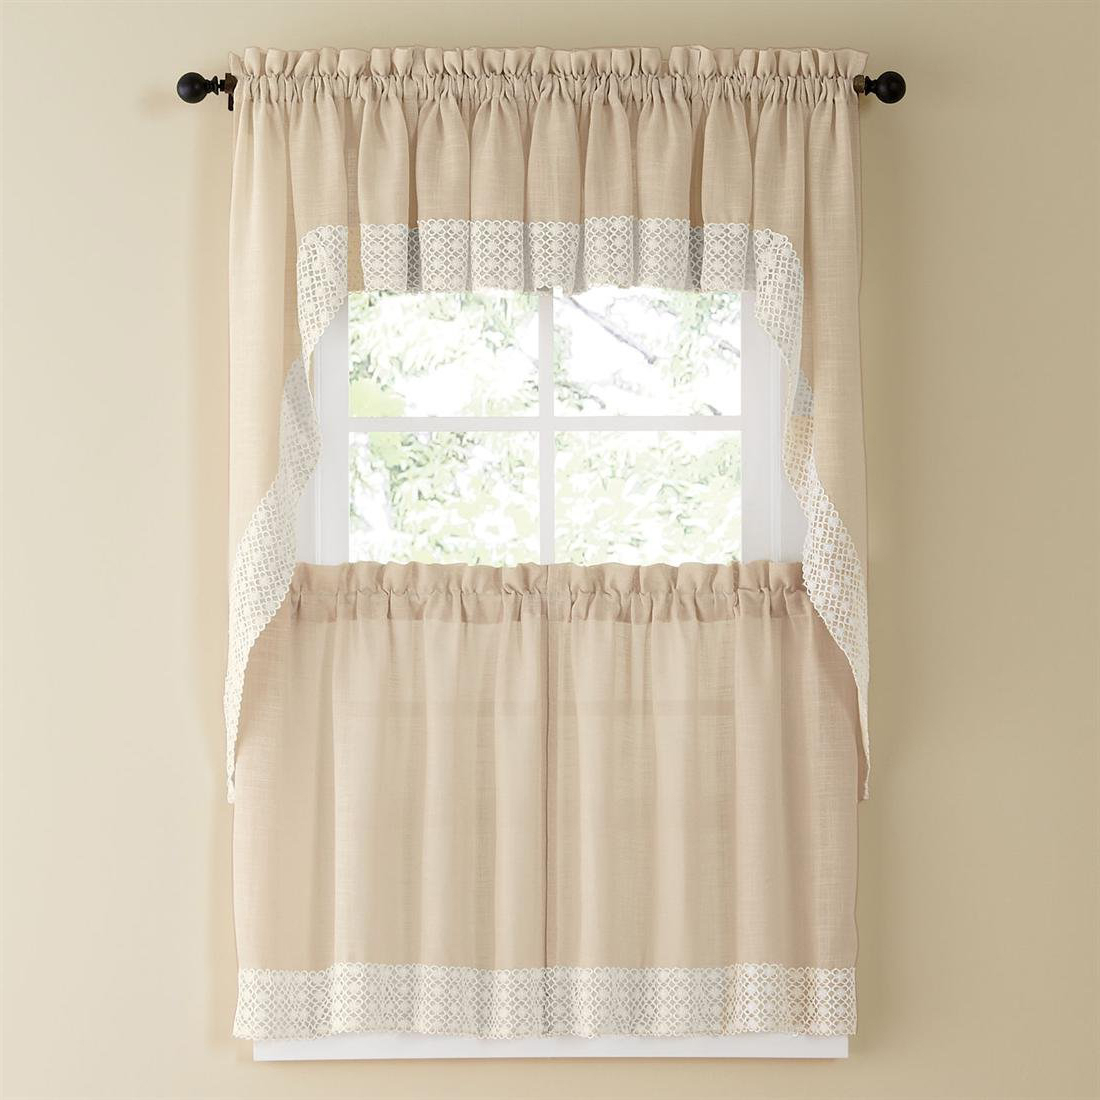 Latest Details About Salem Kitchen Curtain – French Vanilla W/lace Trim – Lorraine  Home Fashions For Tranquility Curtain Tier Pairs (View 6 of 20)